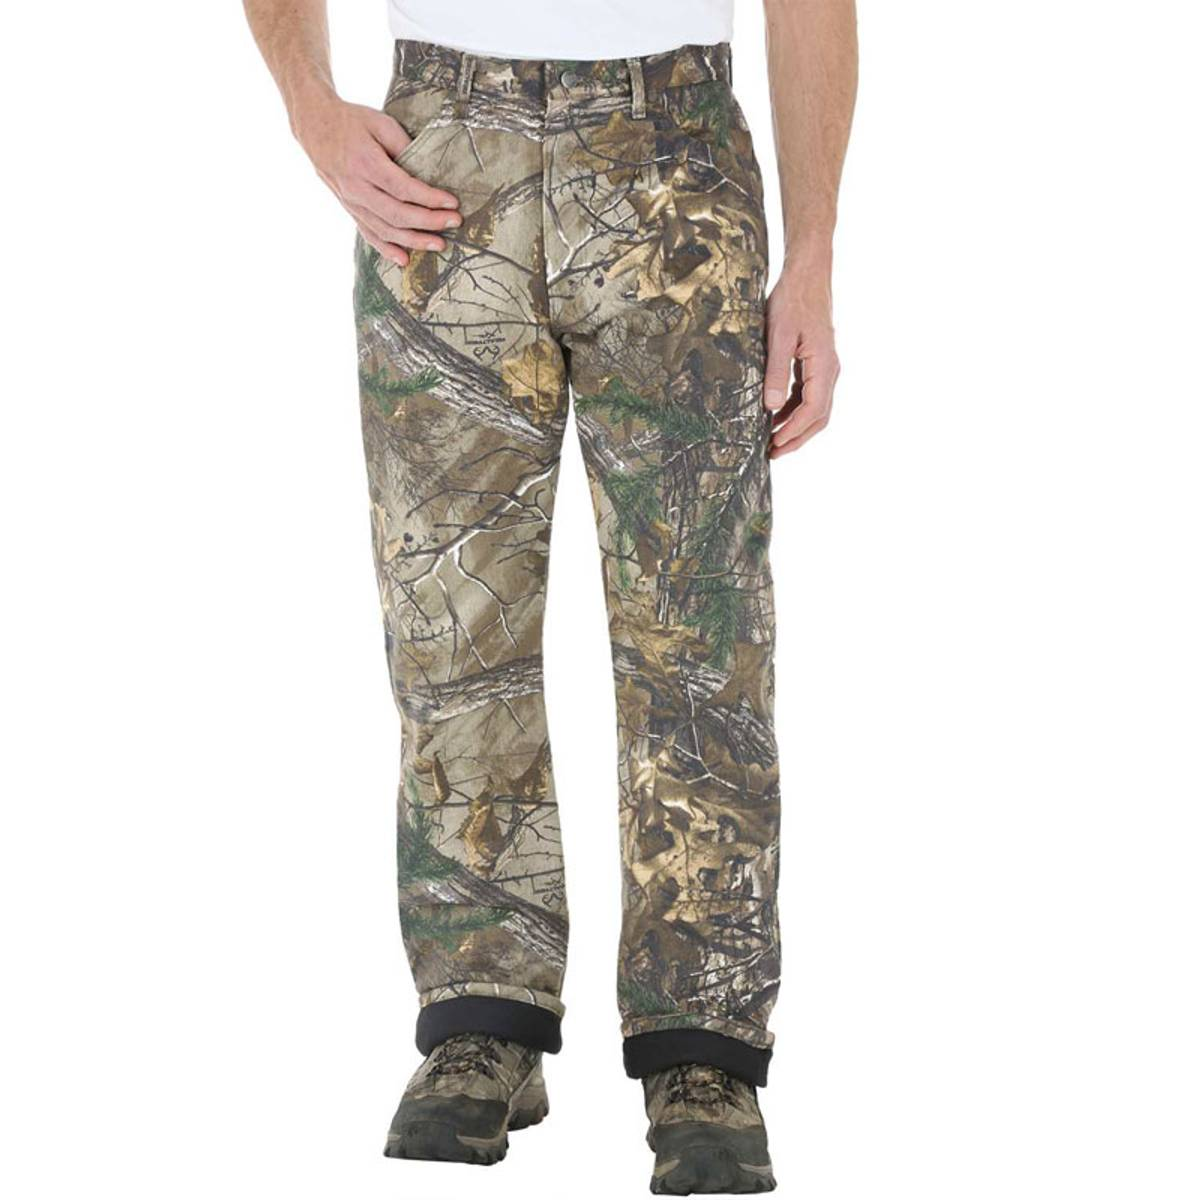 Wrangler ProGear Men\'s Realtree AP Xtra Camouflage Thermal Lined Jeans